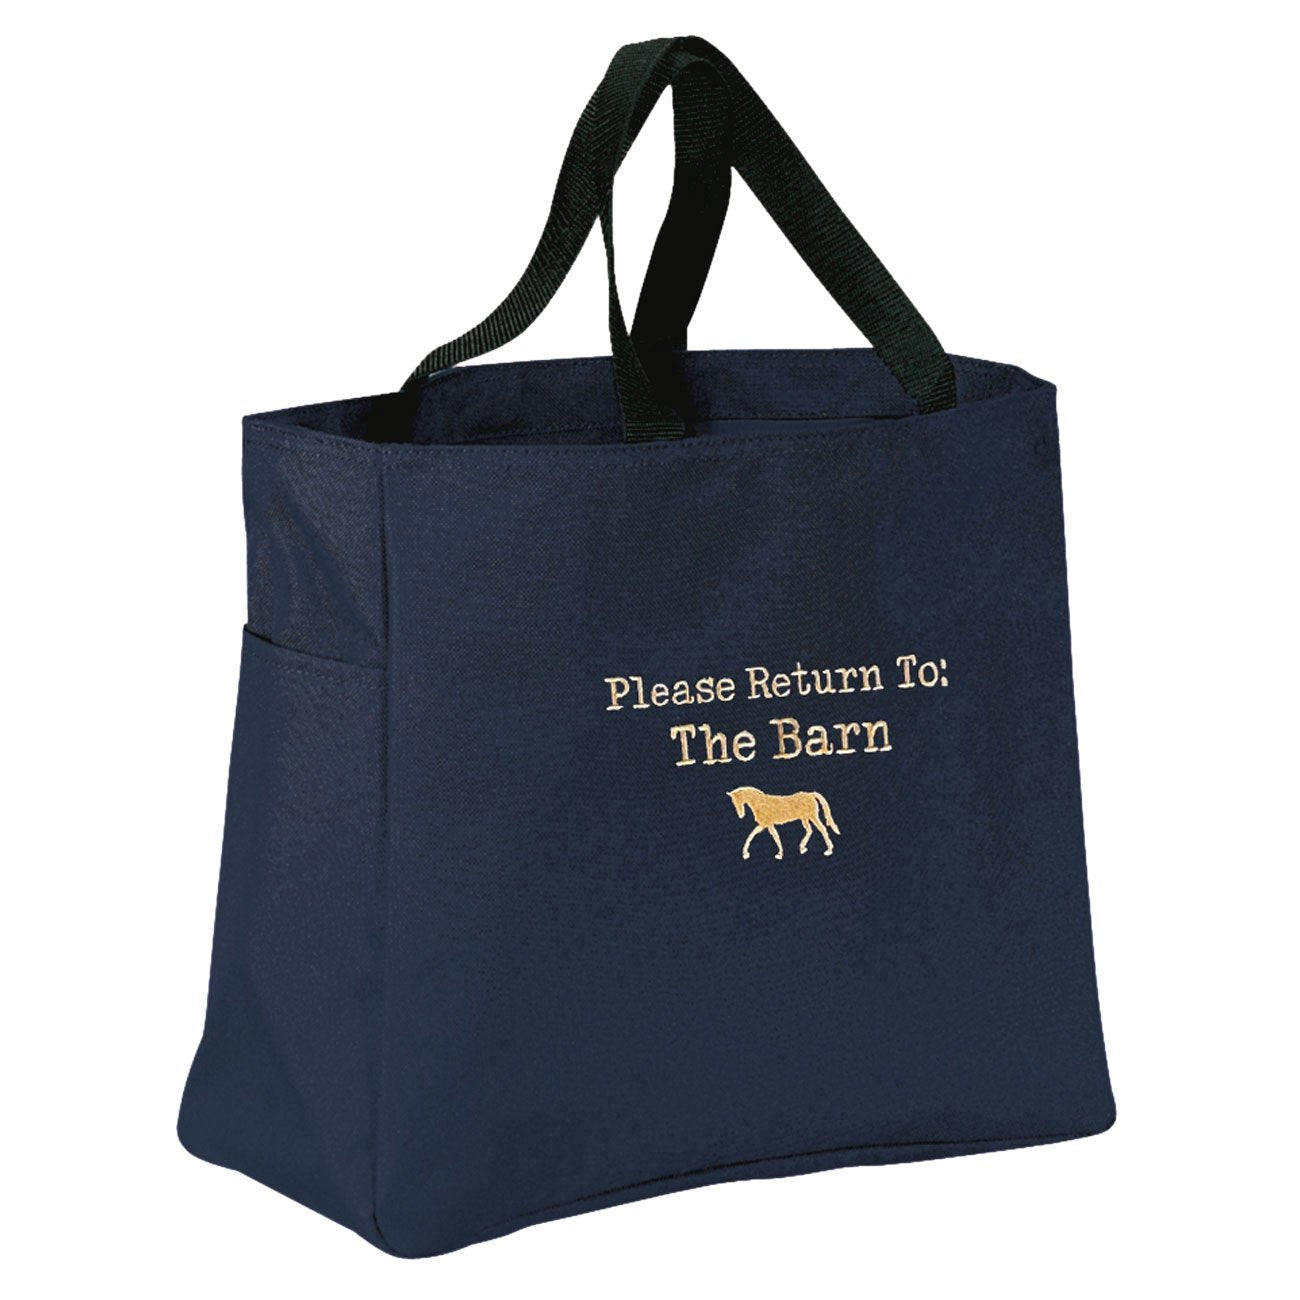 Please Return to Barn Tote Bag